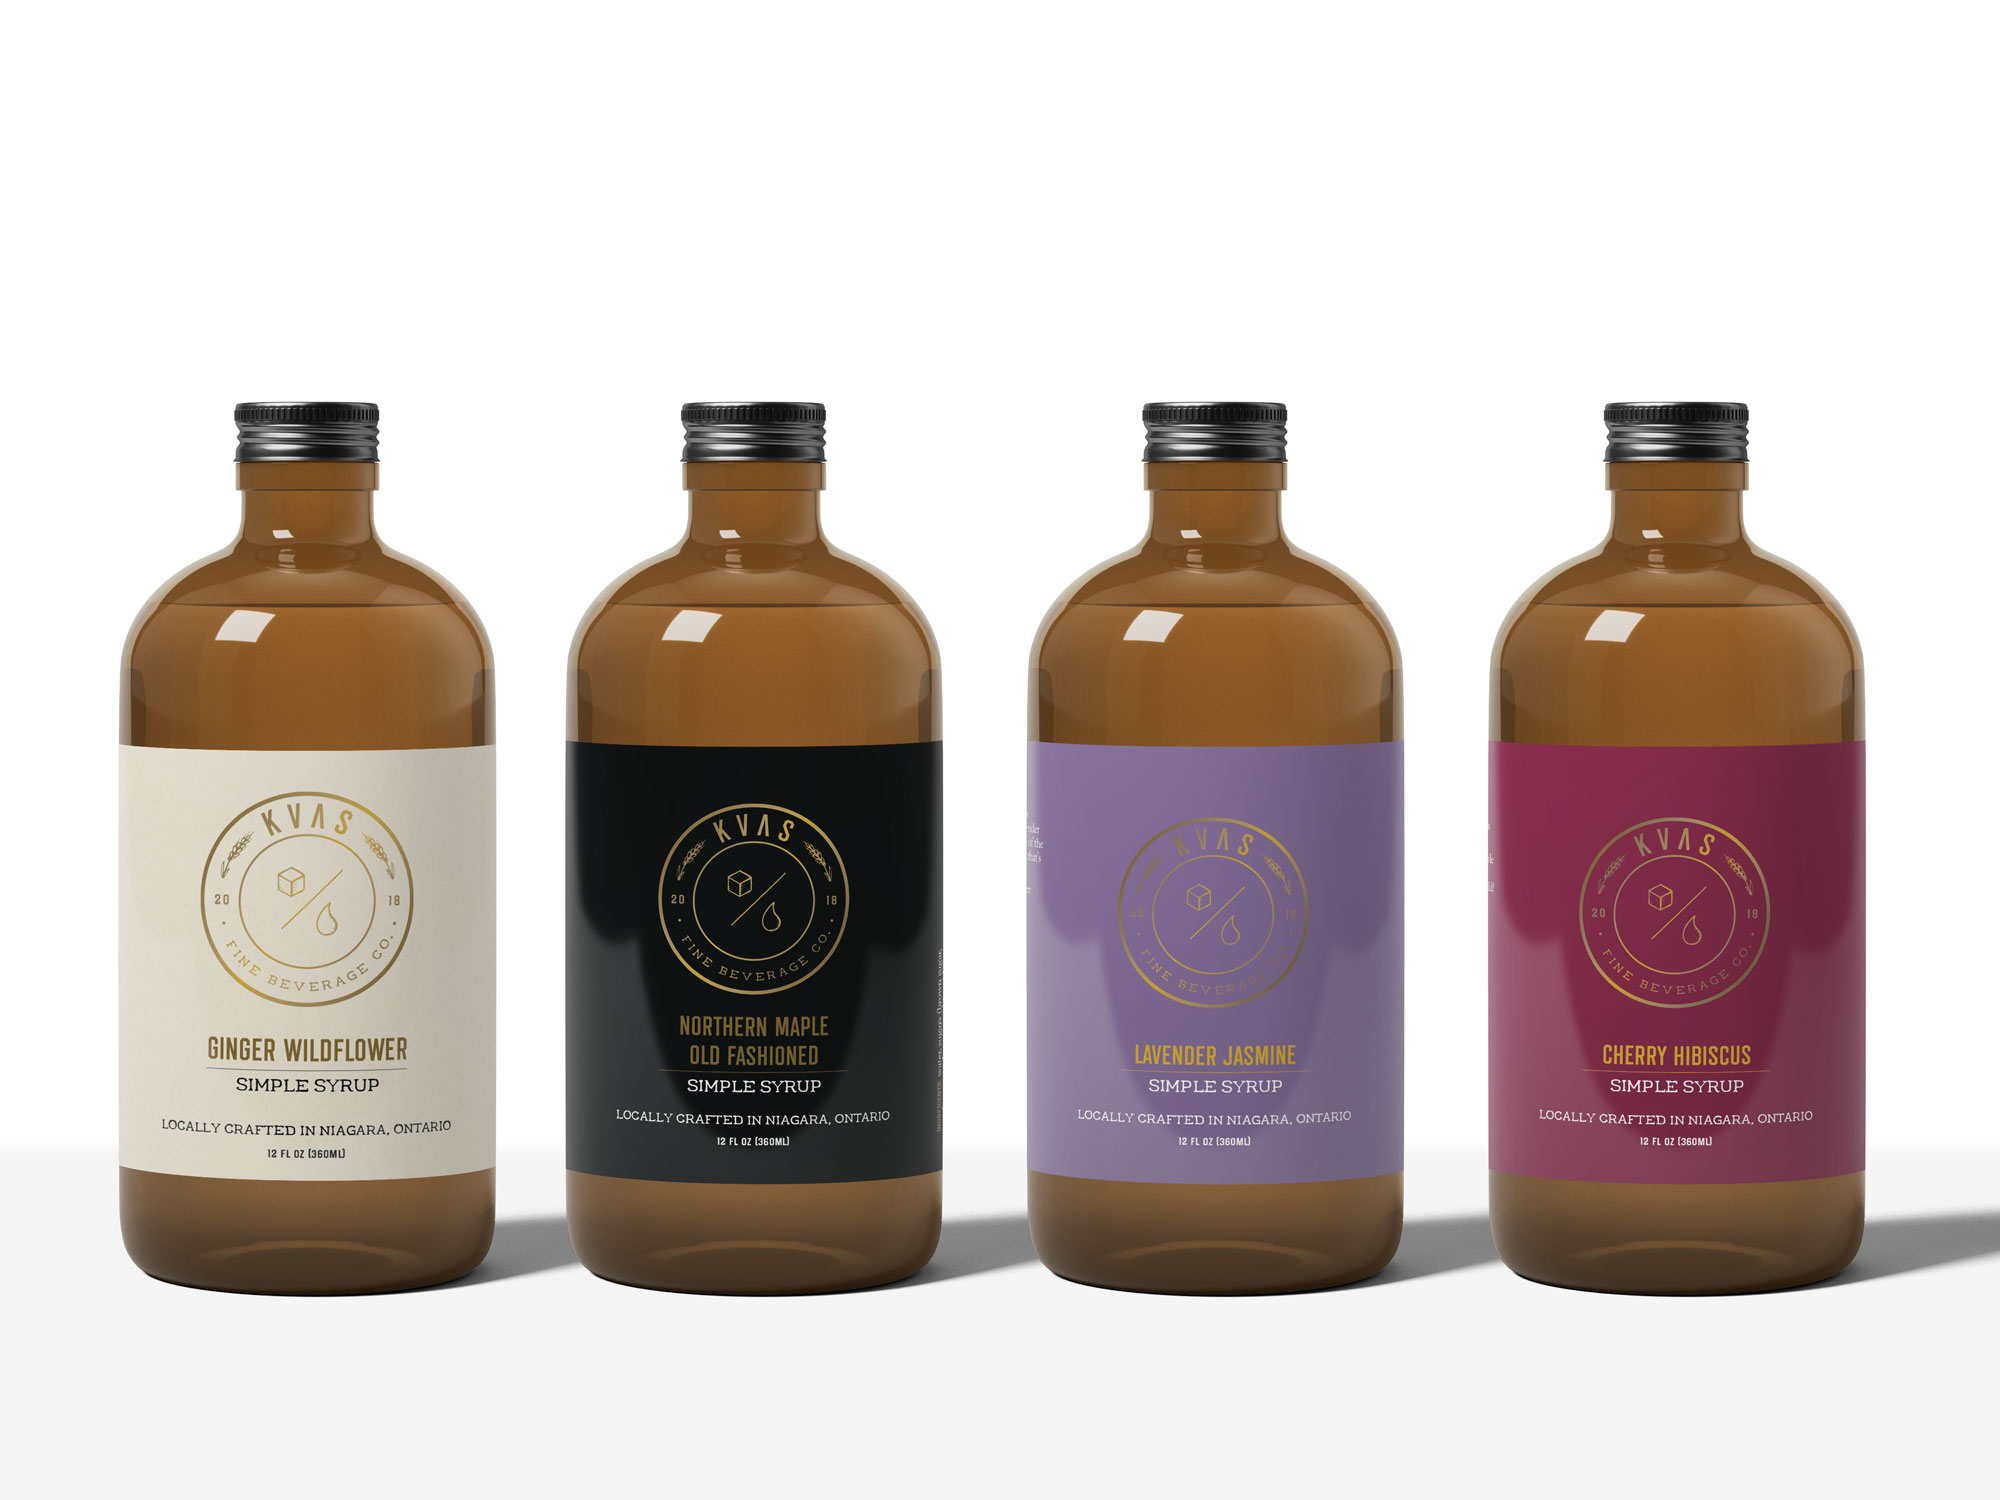 Collection of four Kvas Fine Beverage Co. simple syrup label designs.